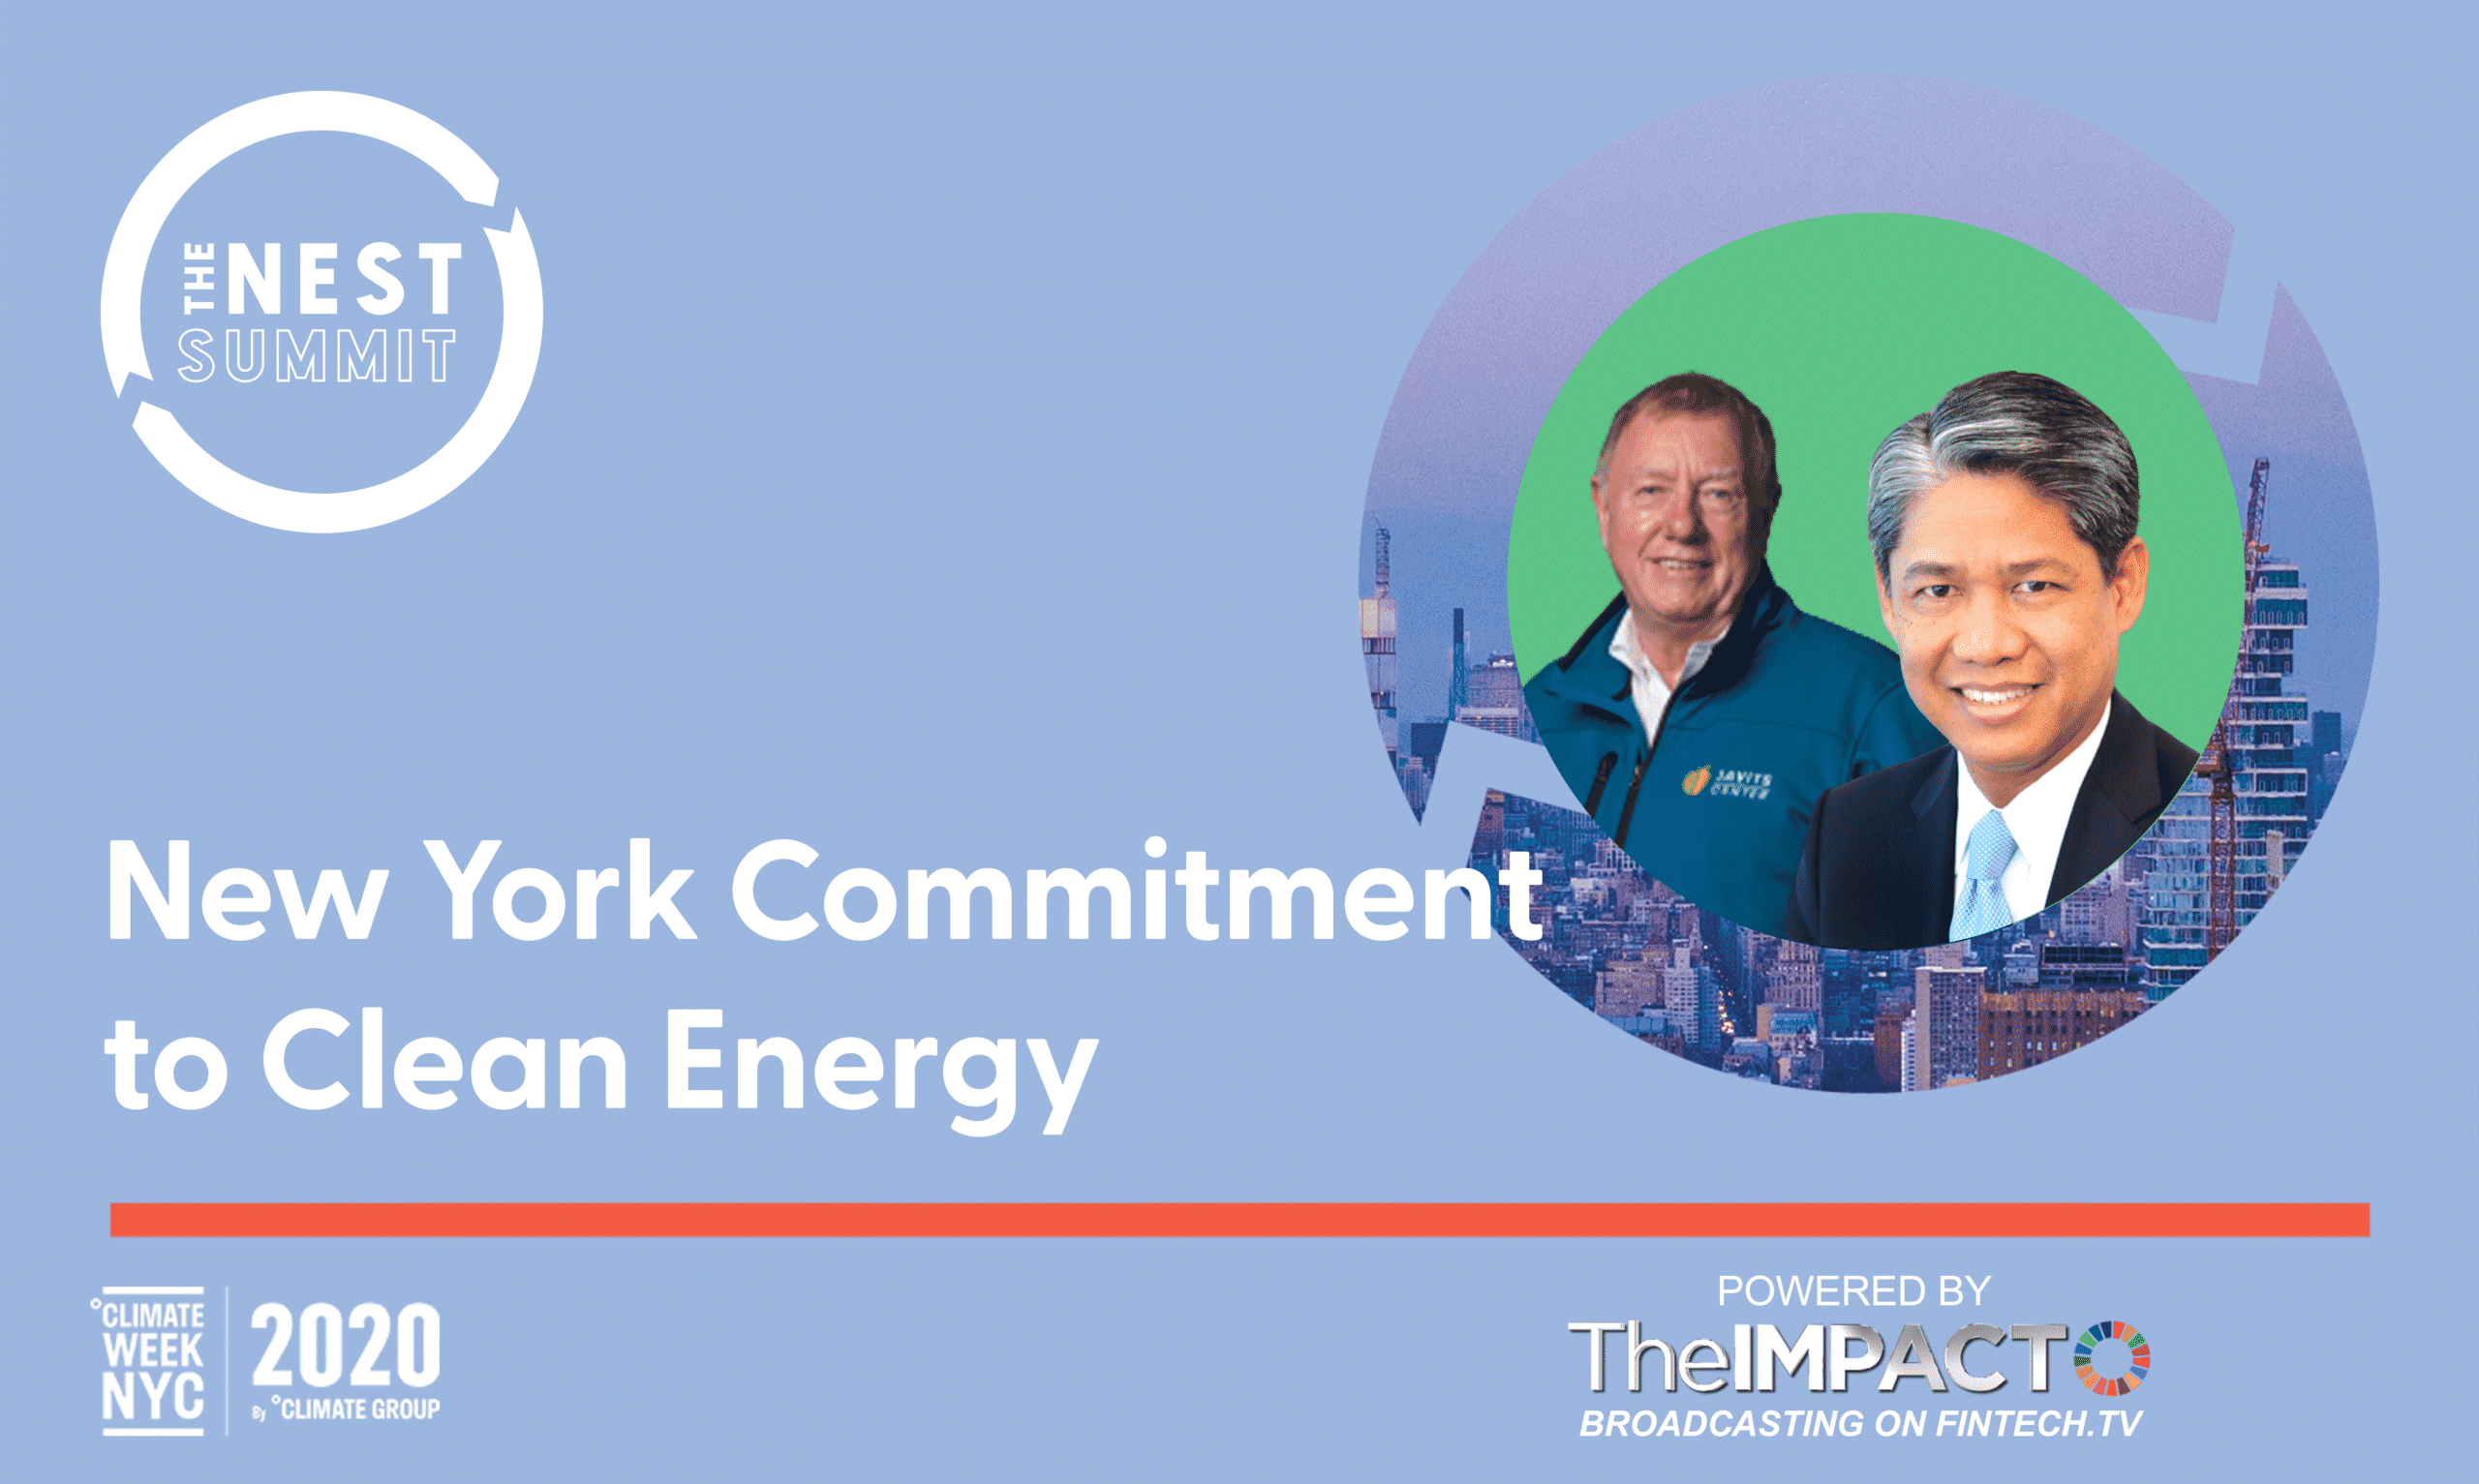 New York Commitment to Clean Energy